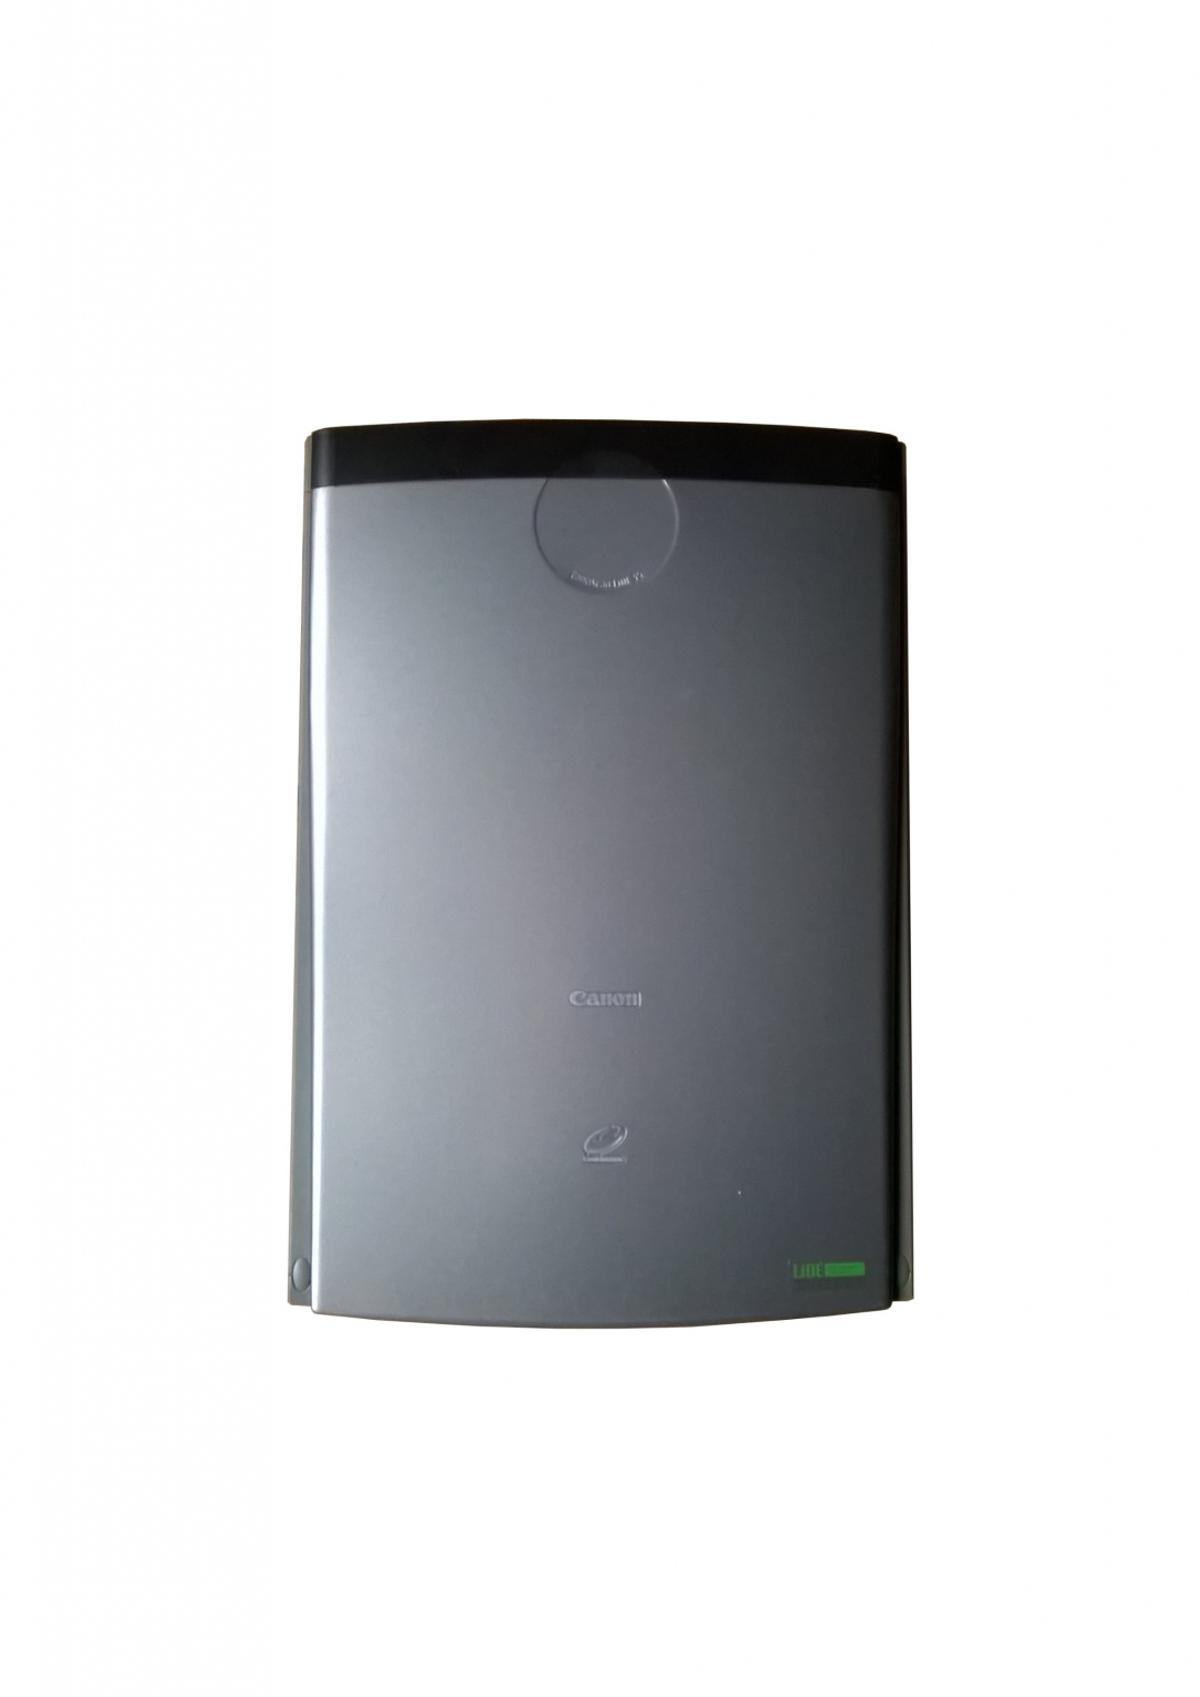 SCANNER CANON LIDE 35 TREIBER WINDOWS 7